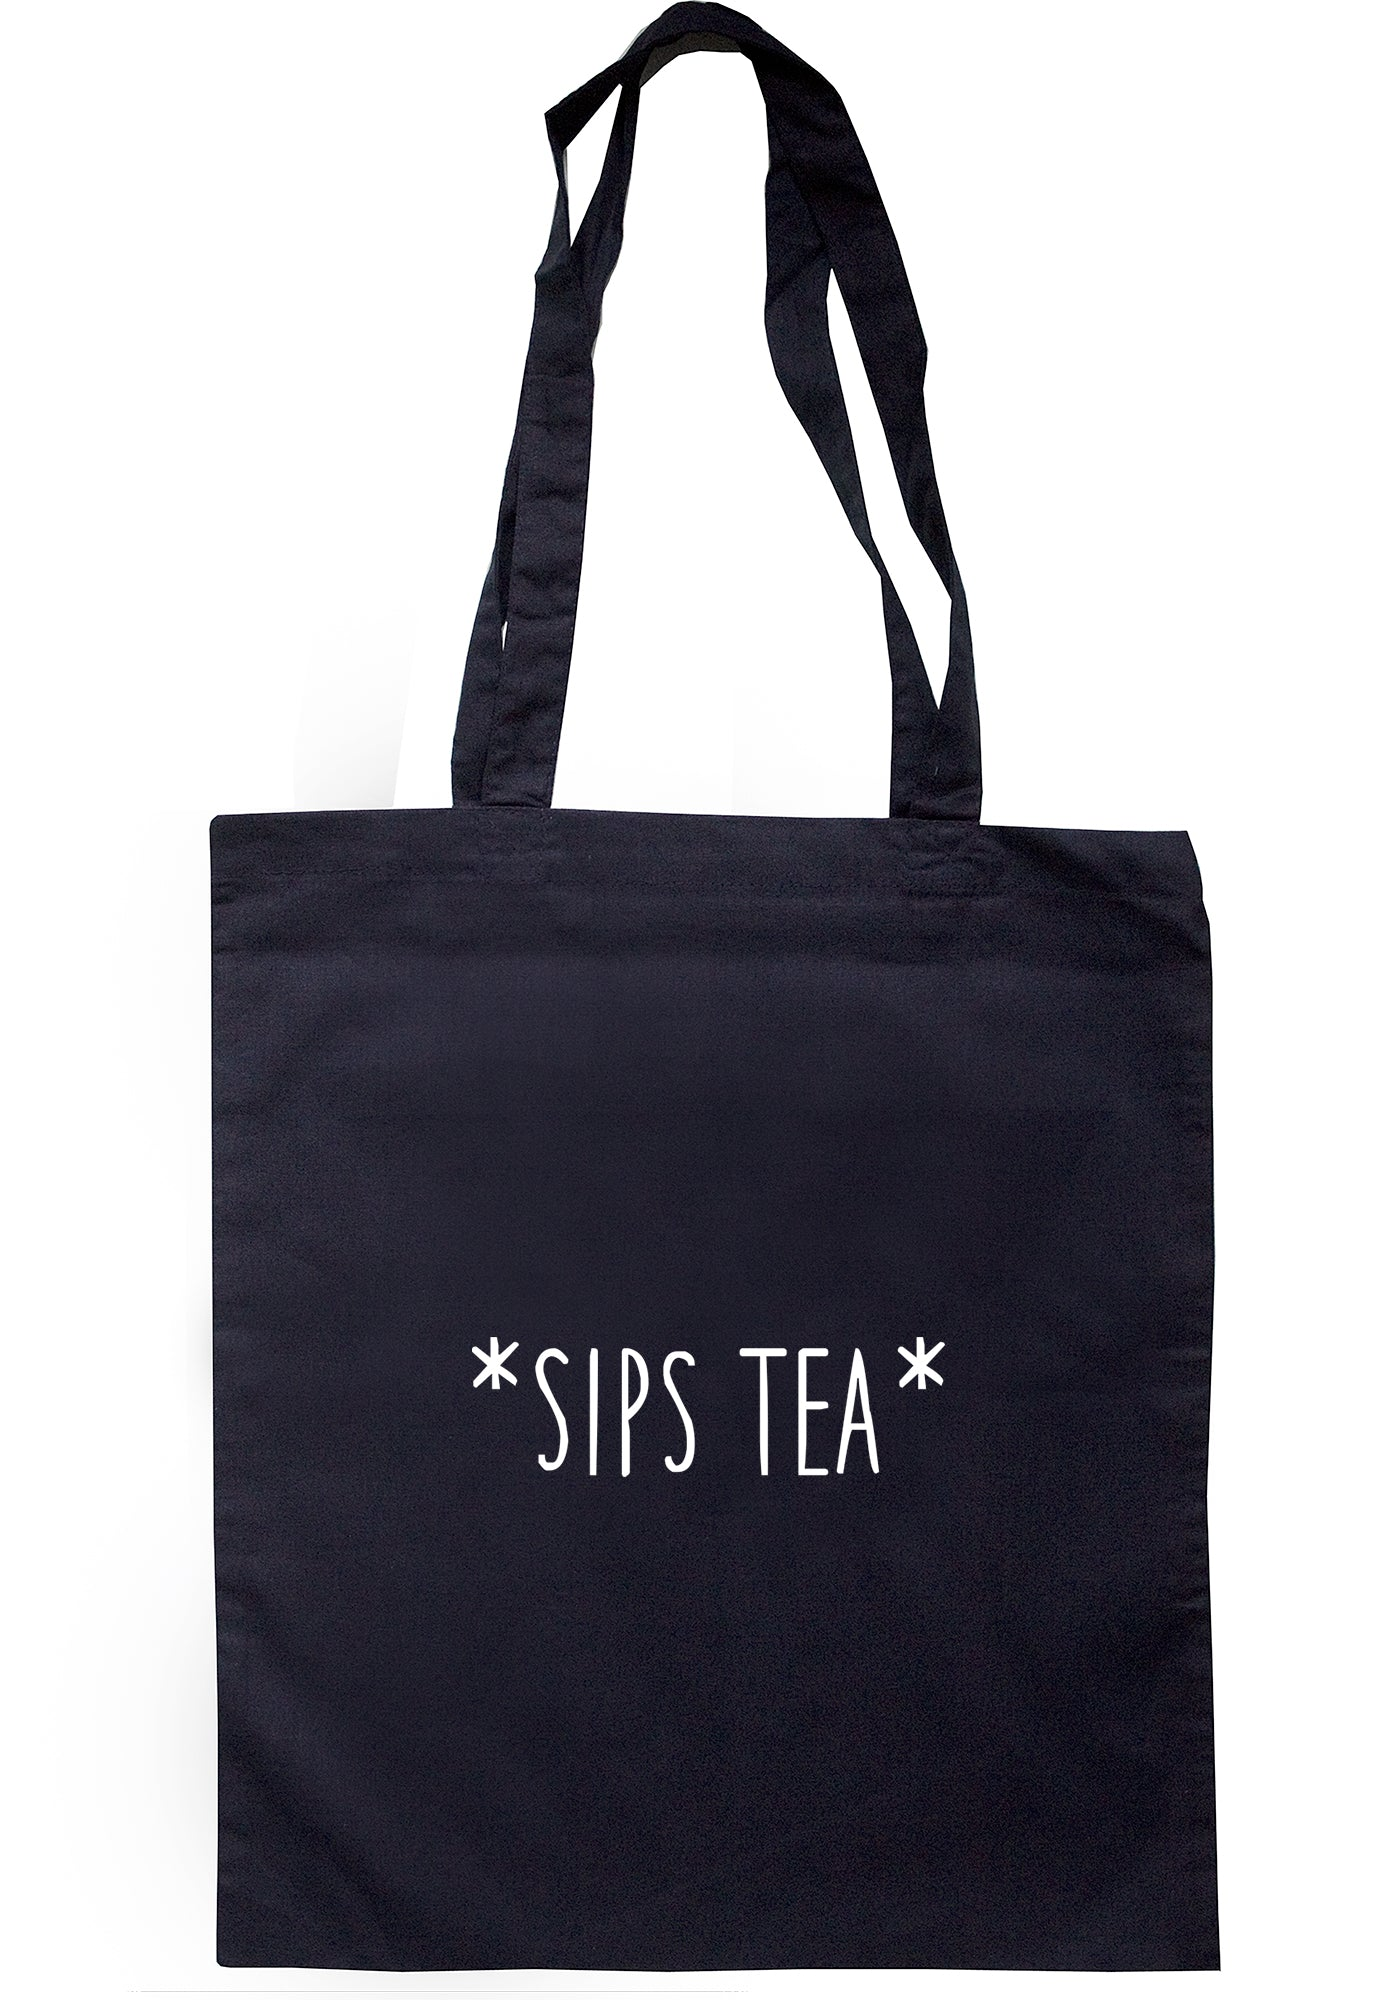 *Sips Tea* Tote Bag S1000 - Illustrated Identity Ltd.